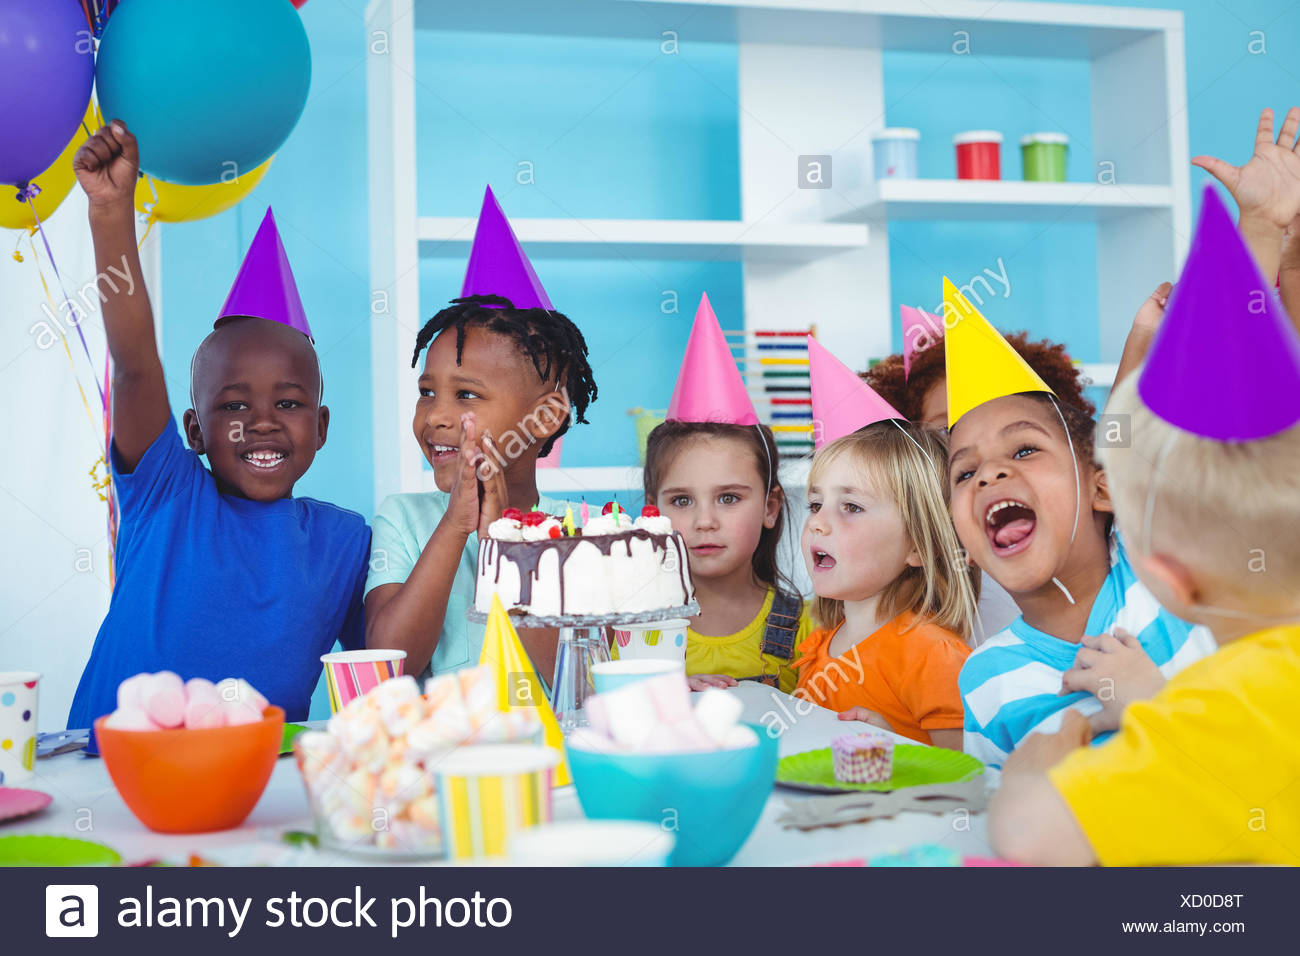 Excited kids enjoying a birthday party - Stock Image